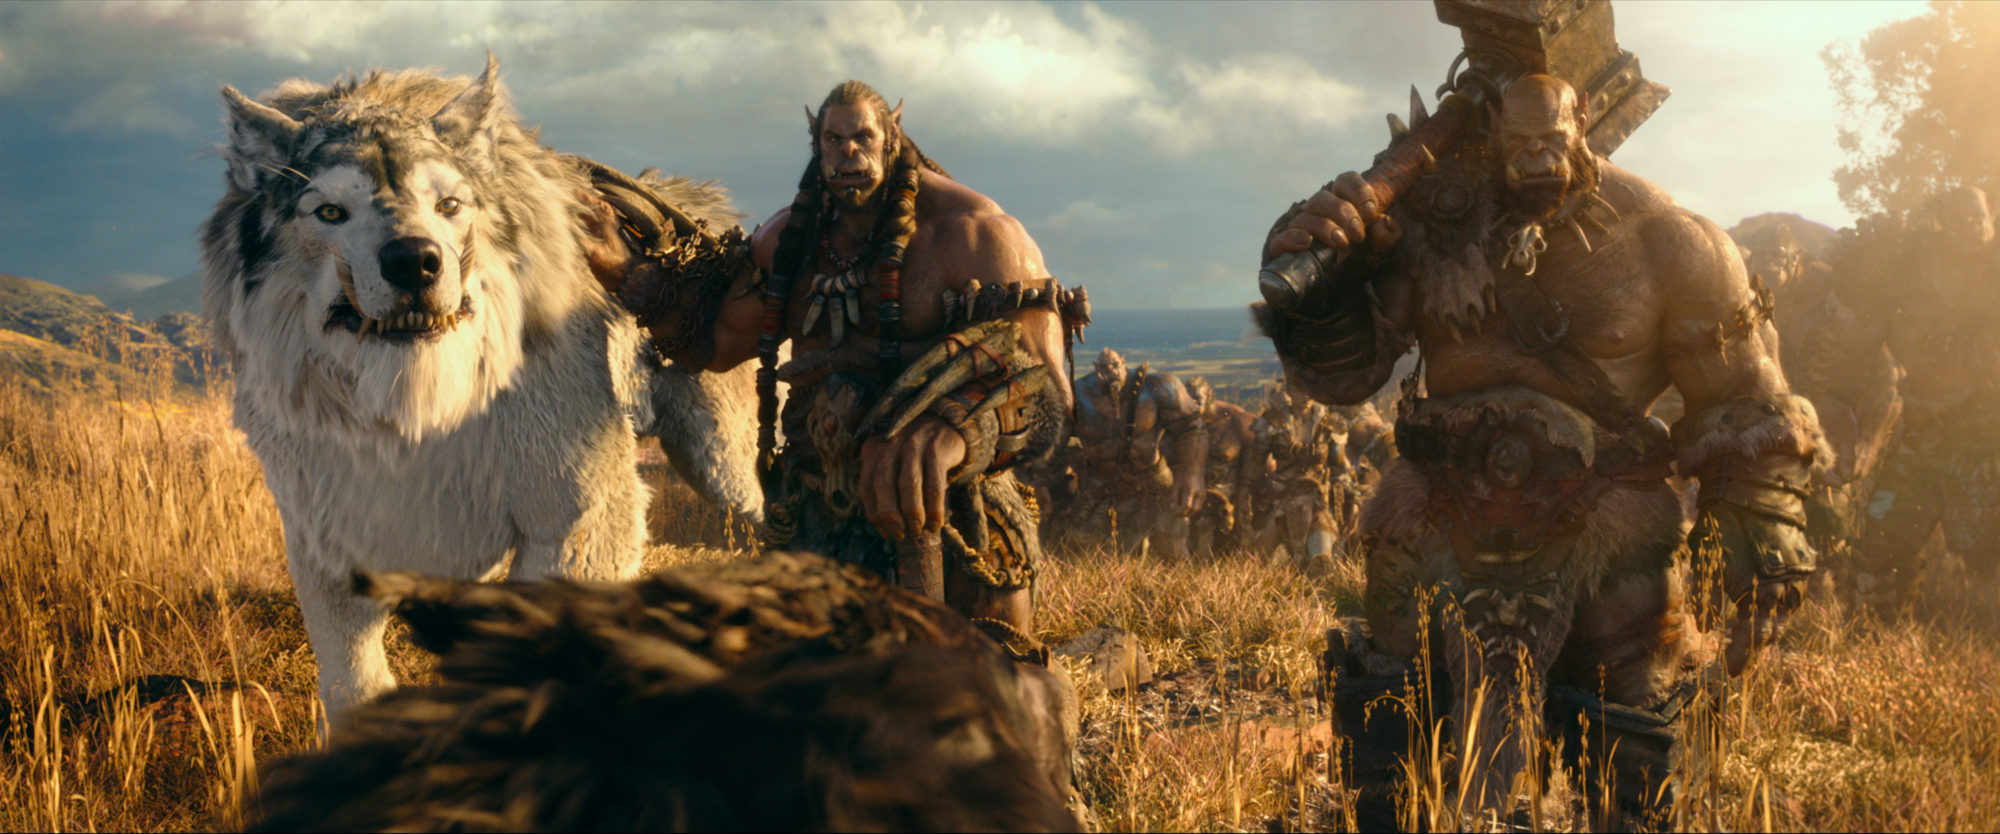 warcraft_the_beginning_02037760_st_12_s-high